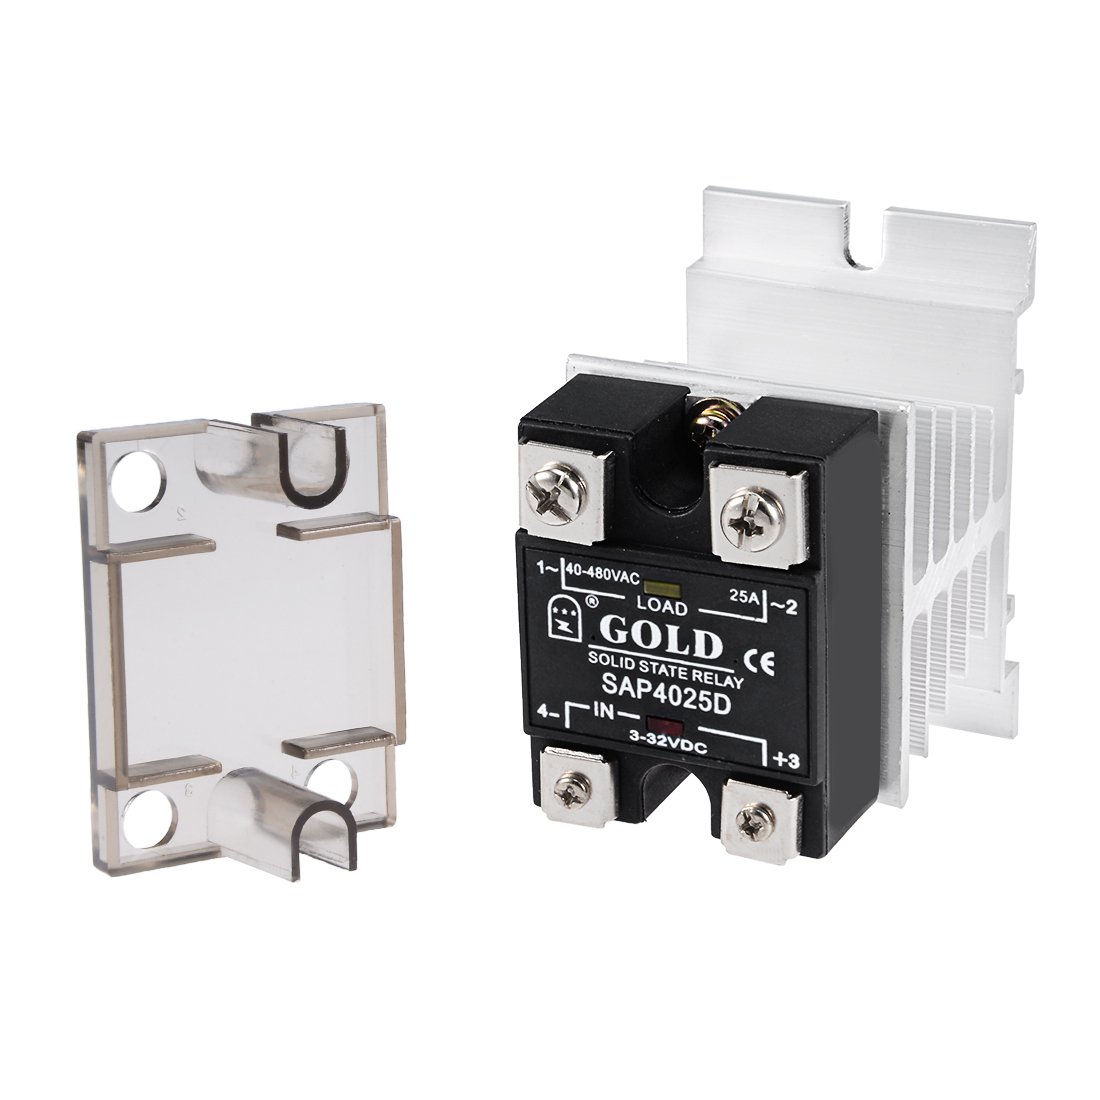 Uxcell Sap4010d 3 32vdc To 40 480vac 10a Single Phase Solid State Relay Triac Module Dc Ac Home Improvement